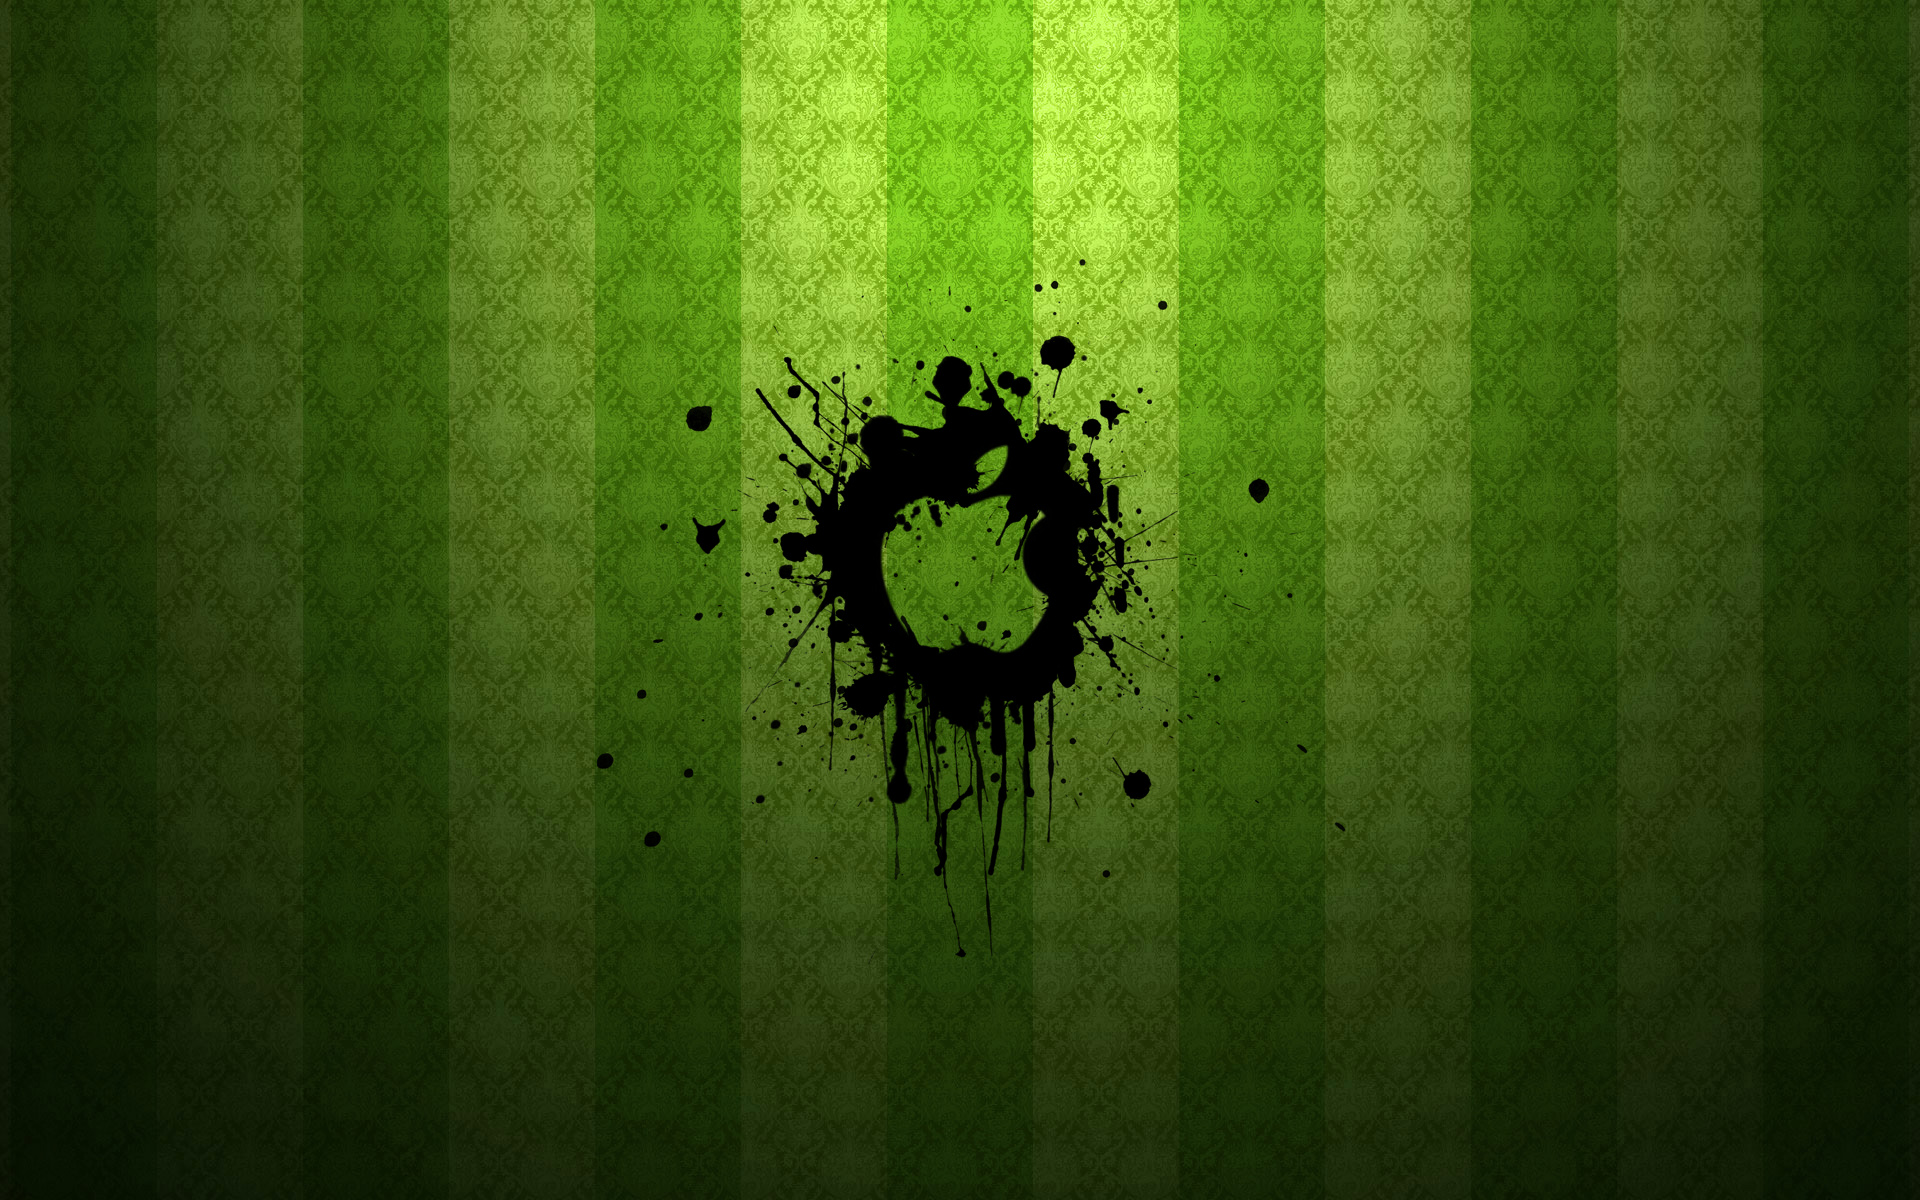 Mac Os X Green Abstract Wallpaper Downloads Wallpaper